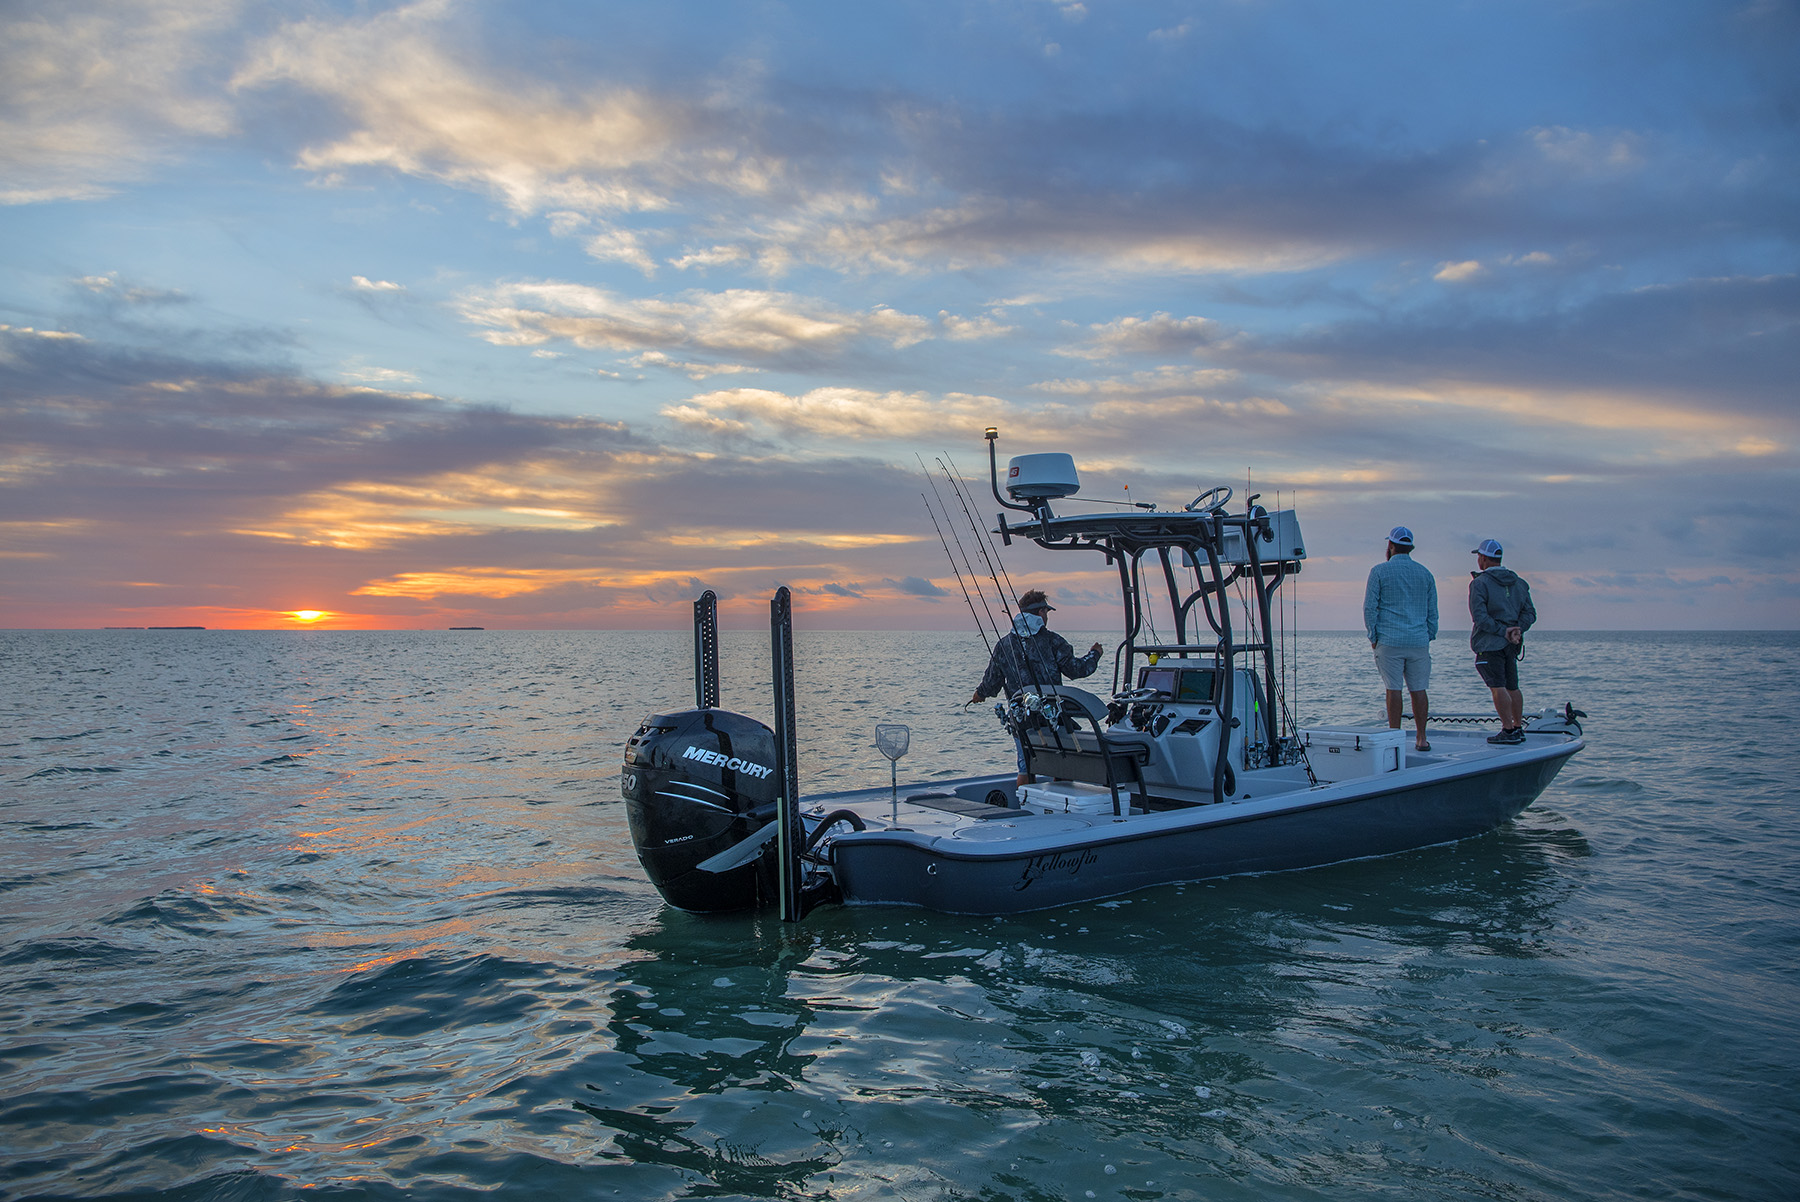 Knowing the tides can get you in and out of difficult locations where fish like to feed